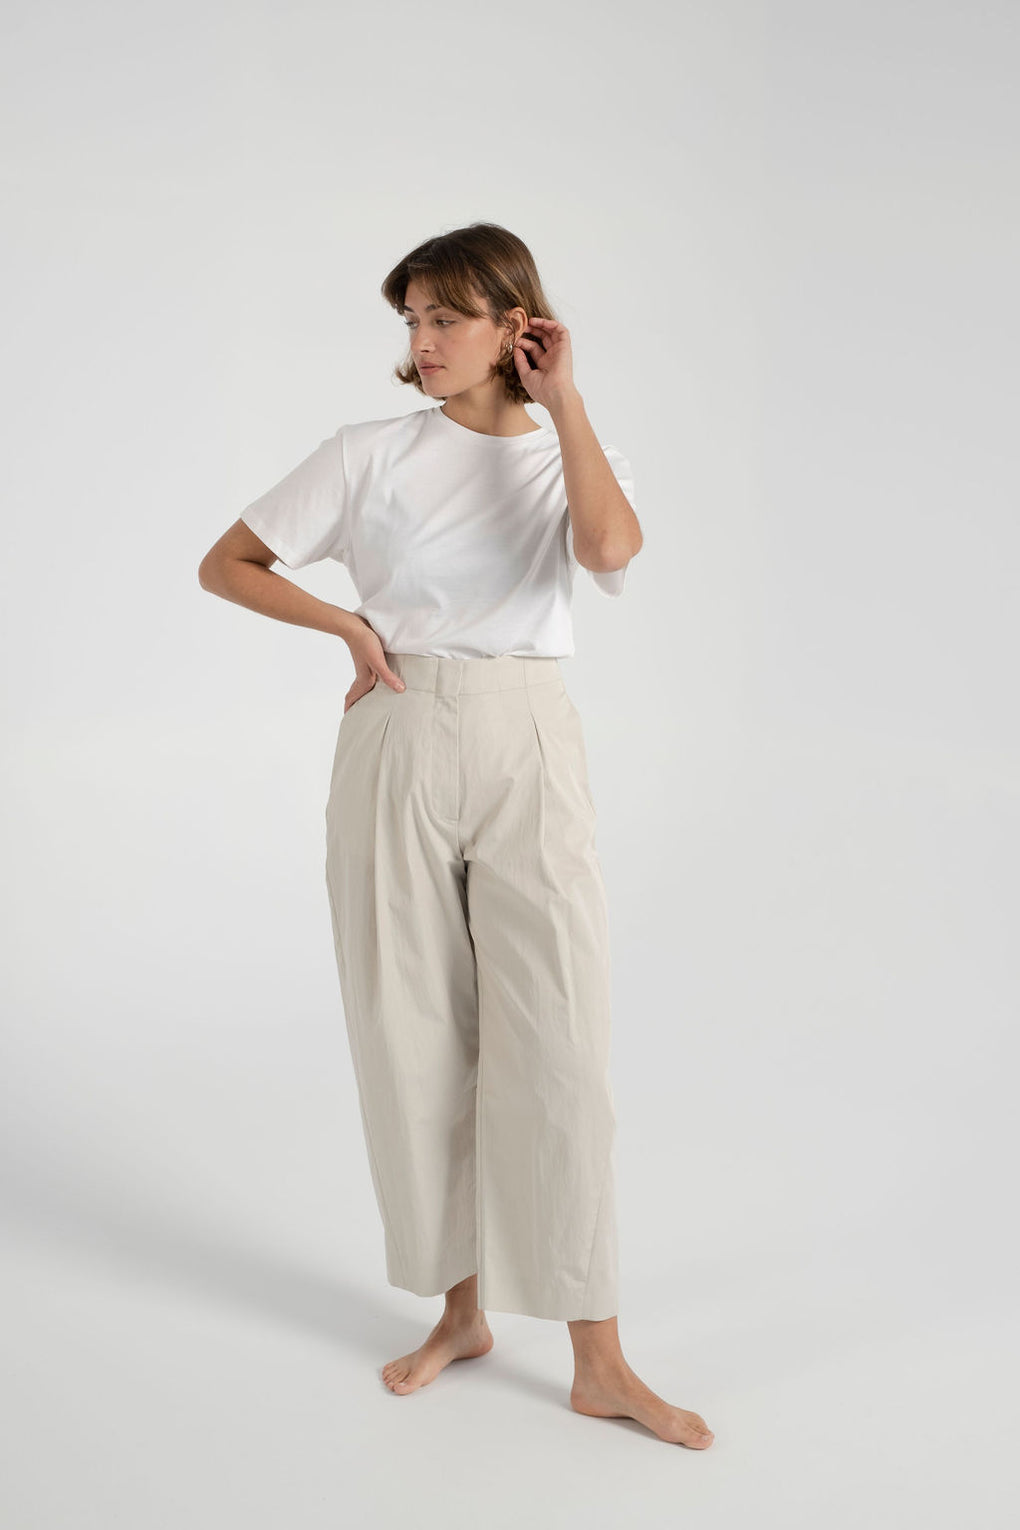 Studio Nicholson-Ballou Pant-off white trousers-Idun-St. Paul